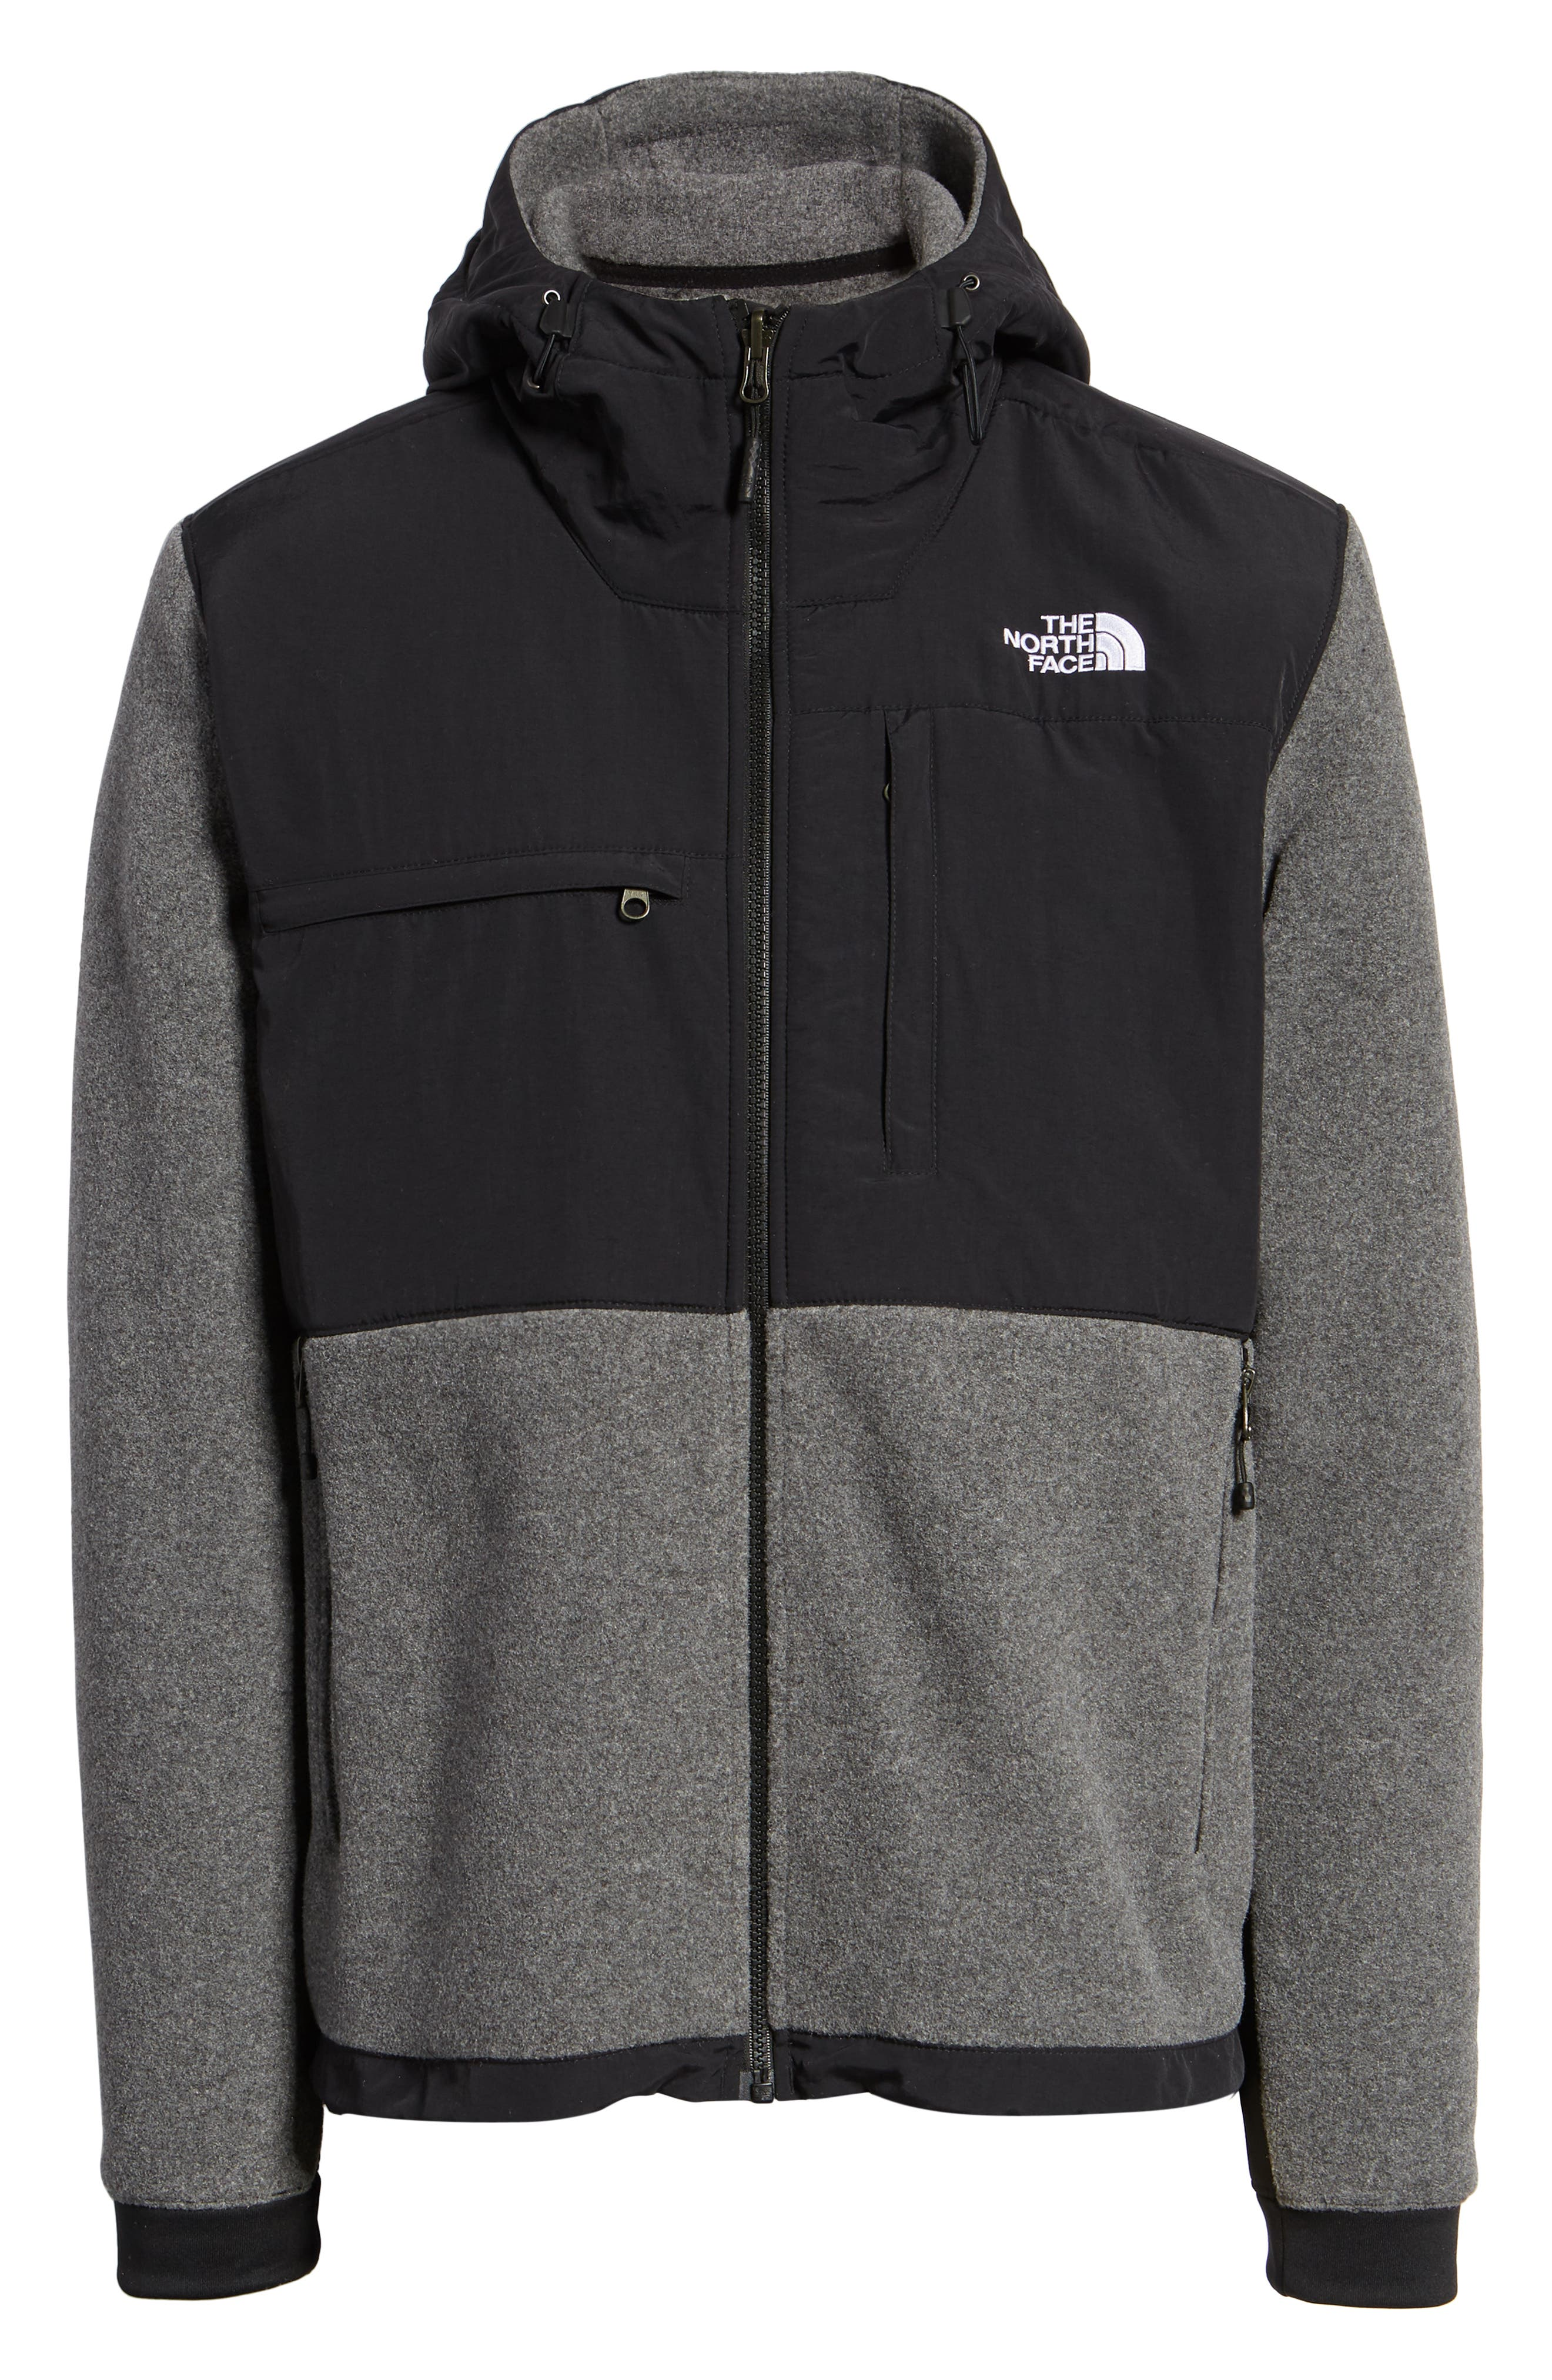 Denali 2 Hooded Jacket,                             Alternate thumbnail 7, color,                             RECYCLED CHARCOAL GREY HEATHER